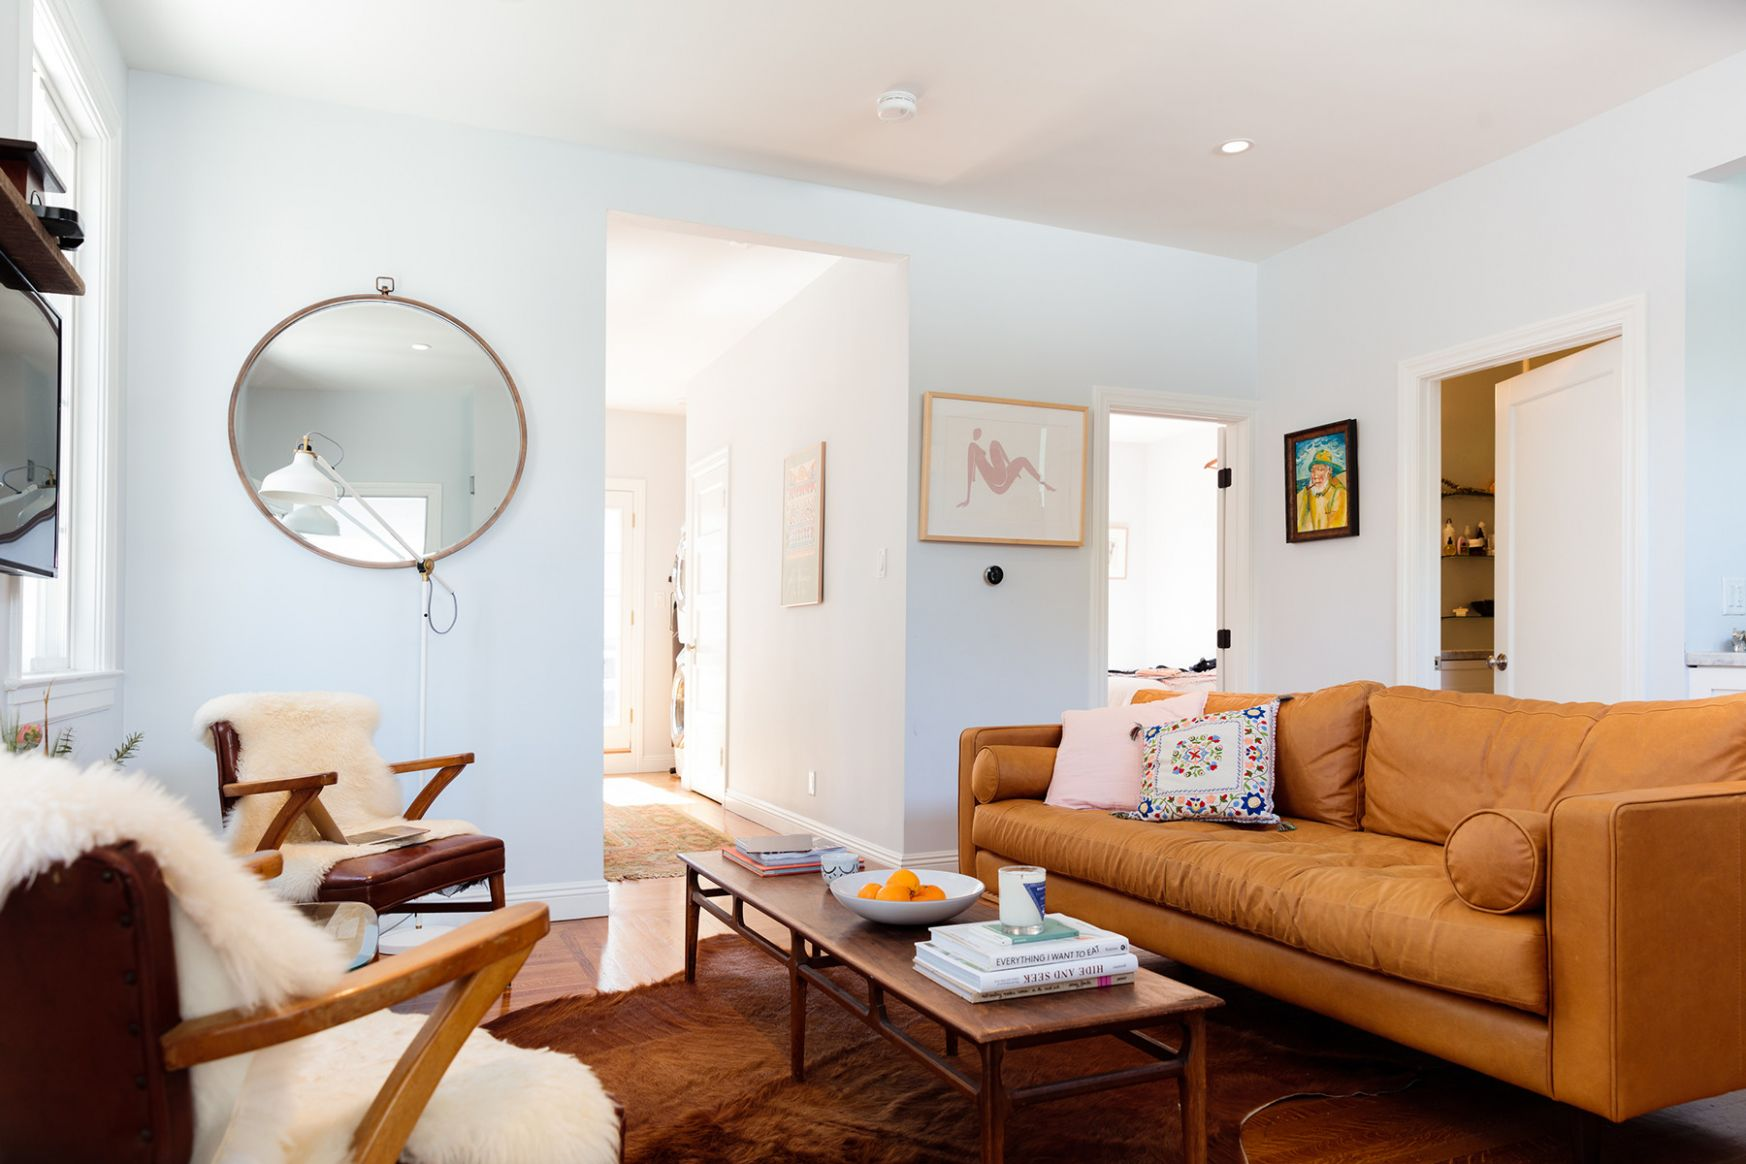 How To Decorate An Apartment When It's Only A Short-Term Rental ...